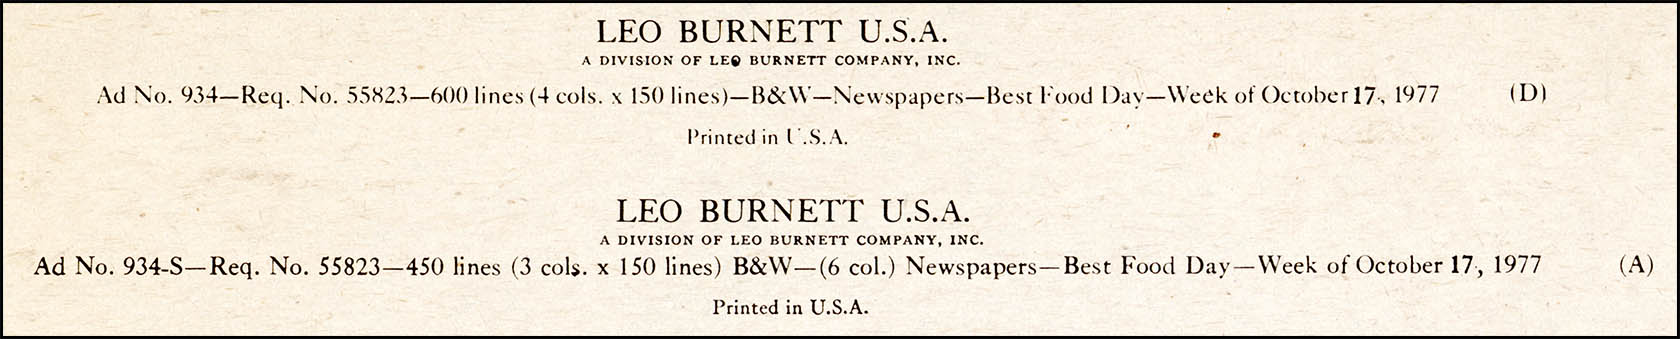 Leo Burnett newspaper ad proof close-up